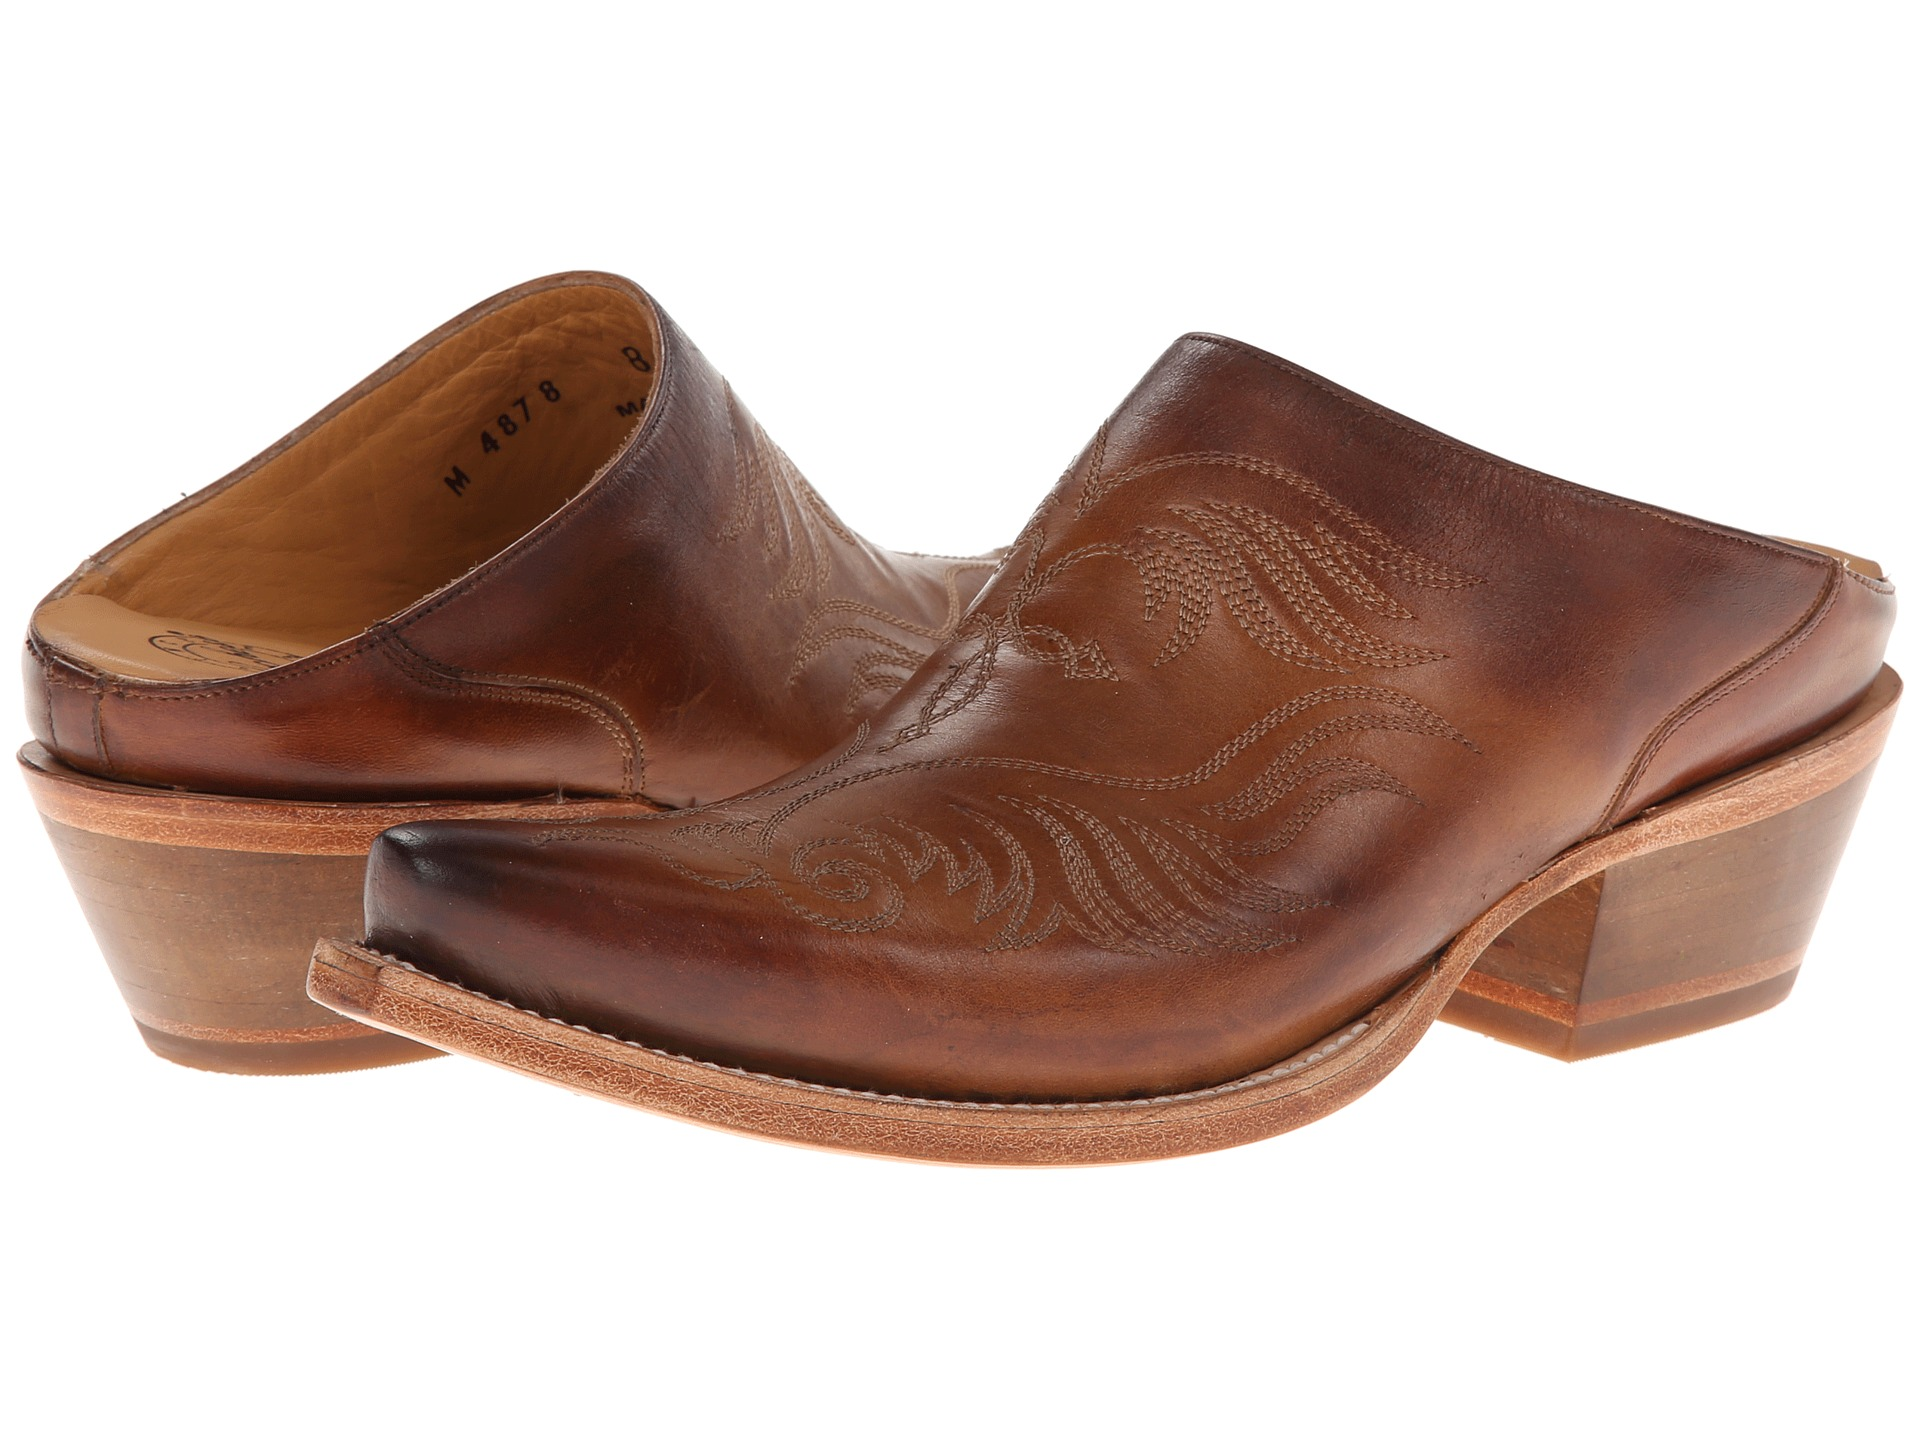 Lucchese M4878 Western Mule Whiskey - Zappos.com Free ...